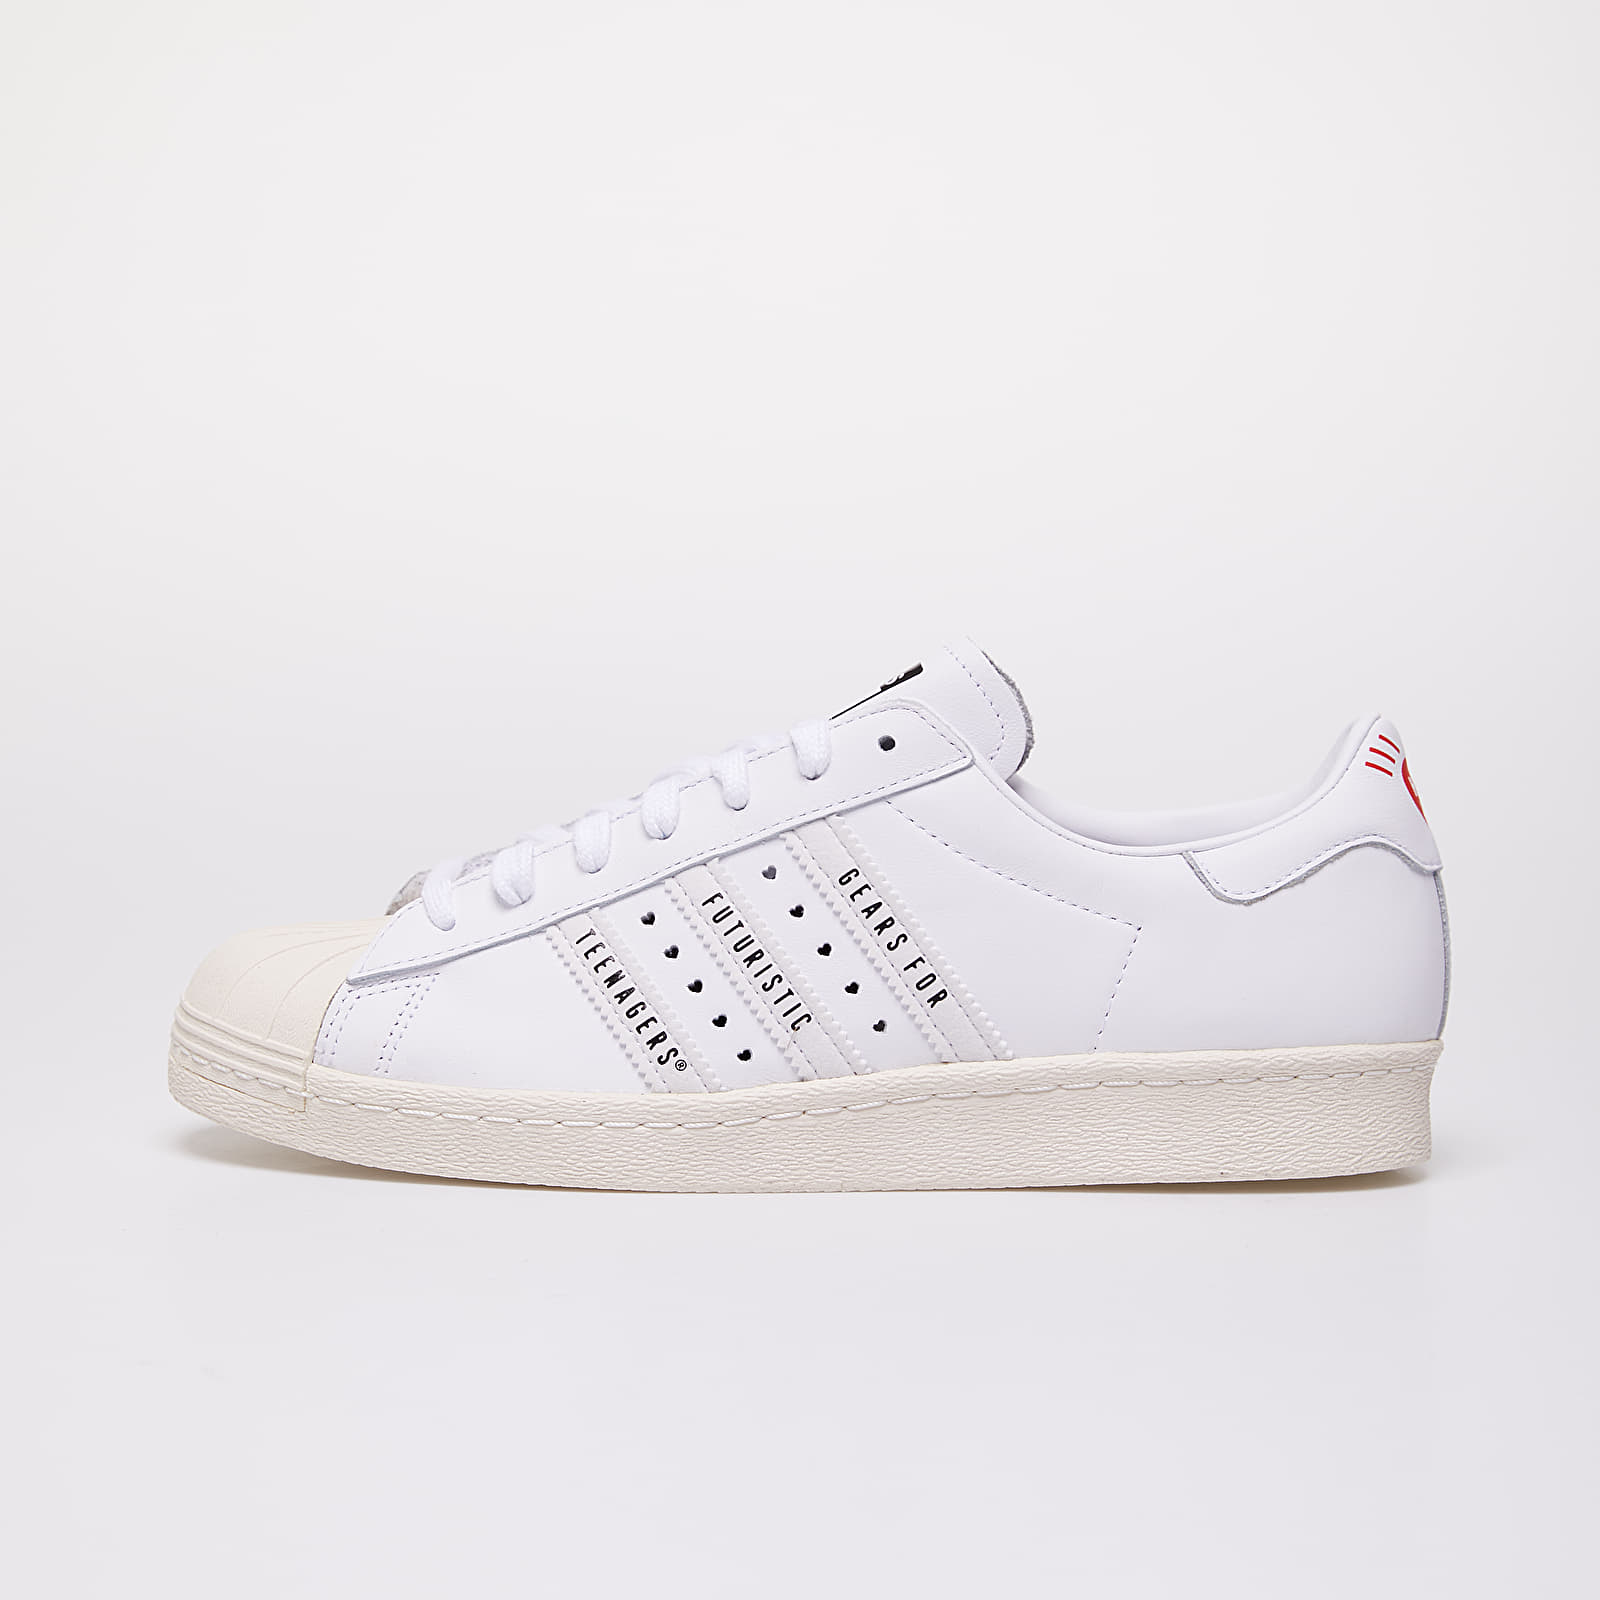 Men's shoes adidas x Pharrell Williams Superstar 80s Human Made Core Black/ Ftwr White/ Off White